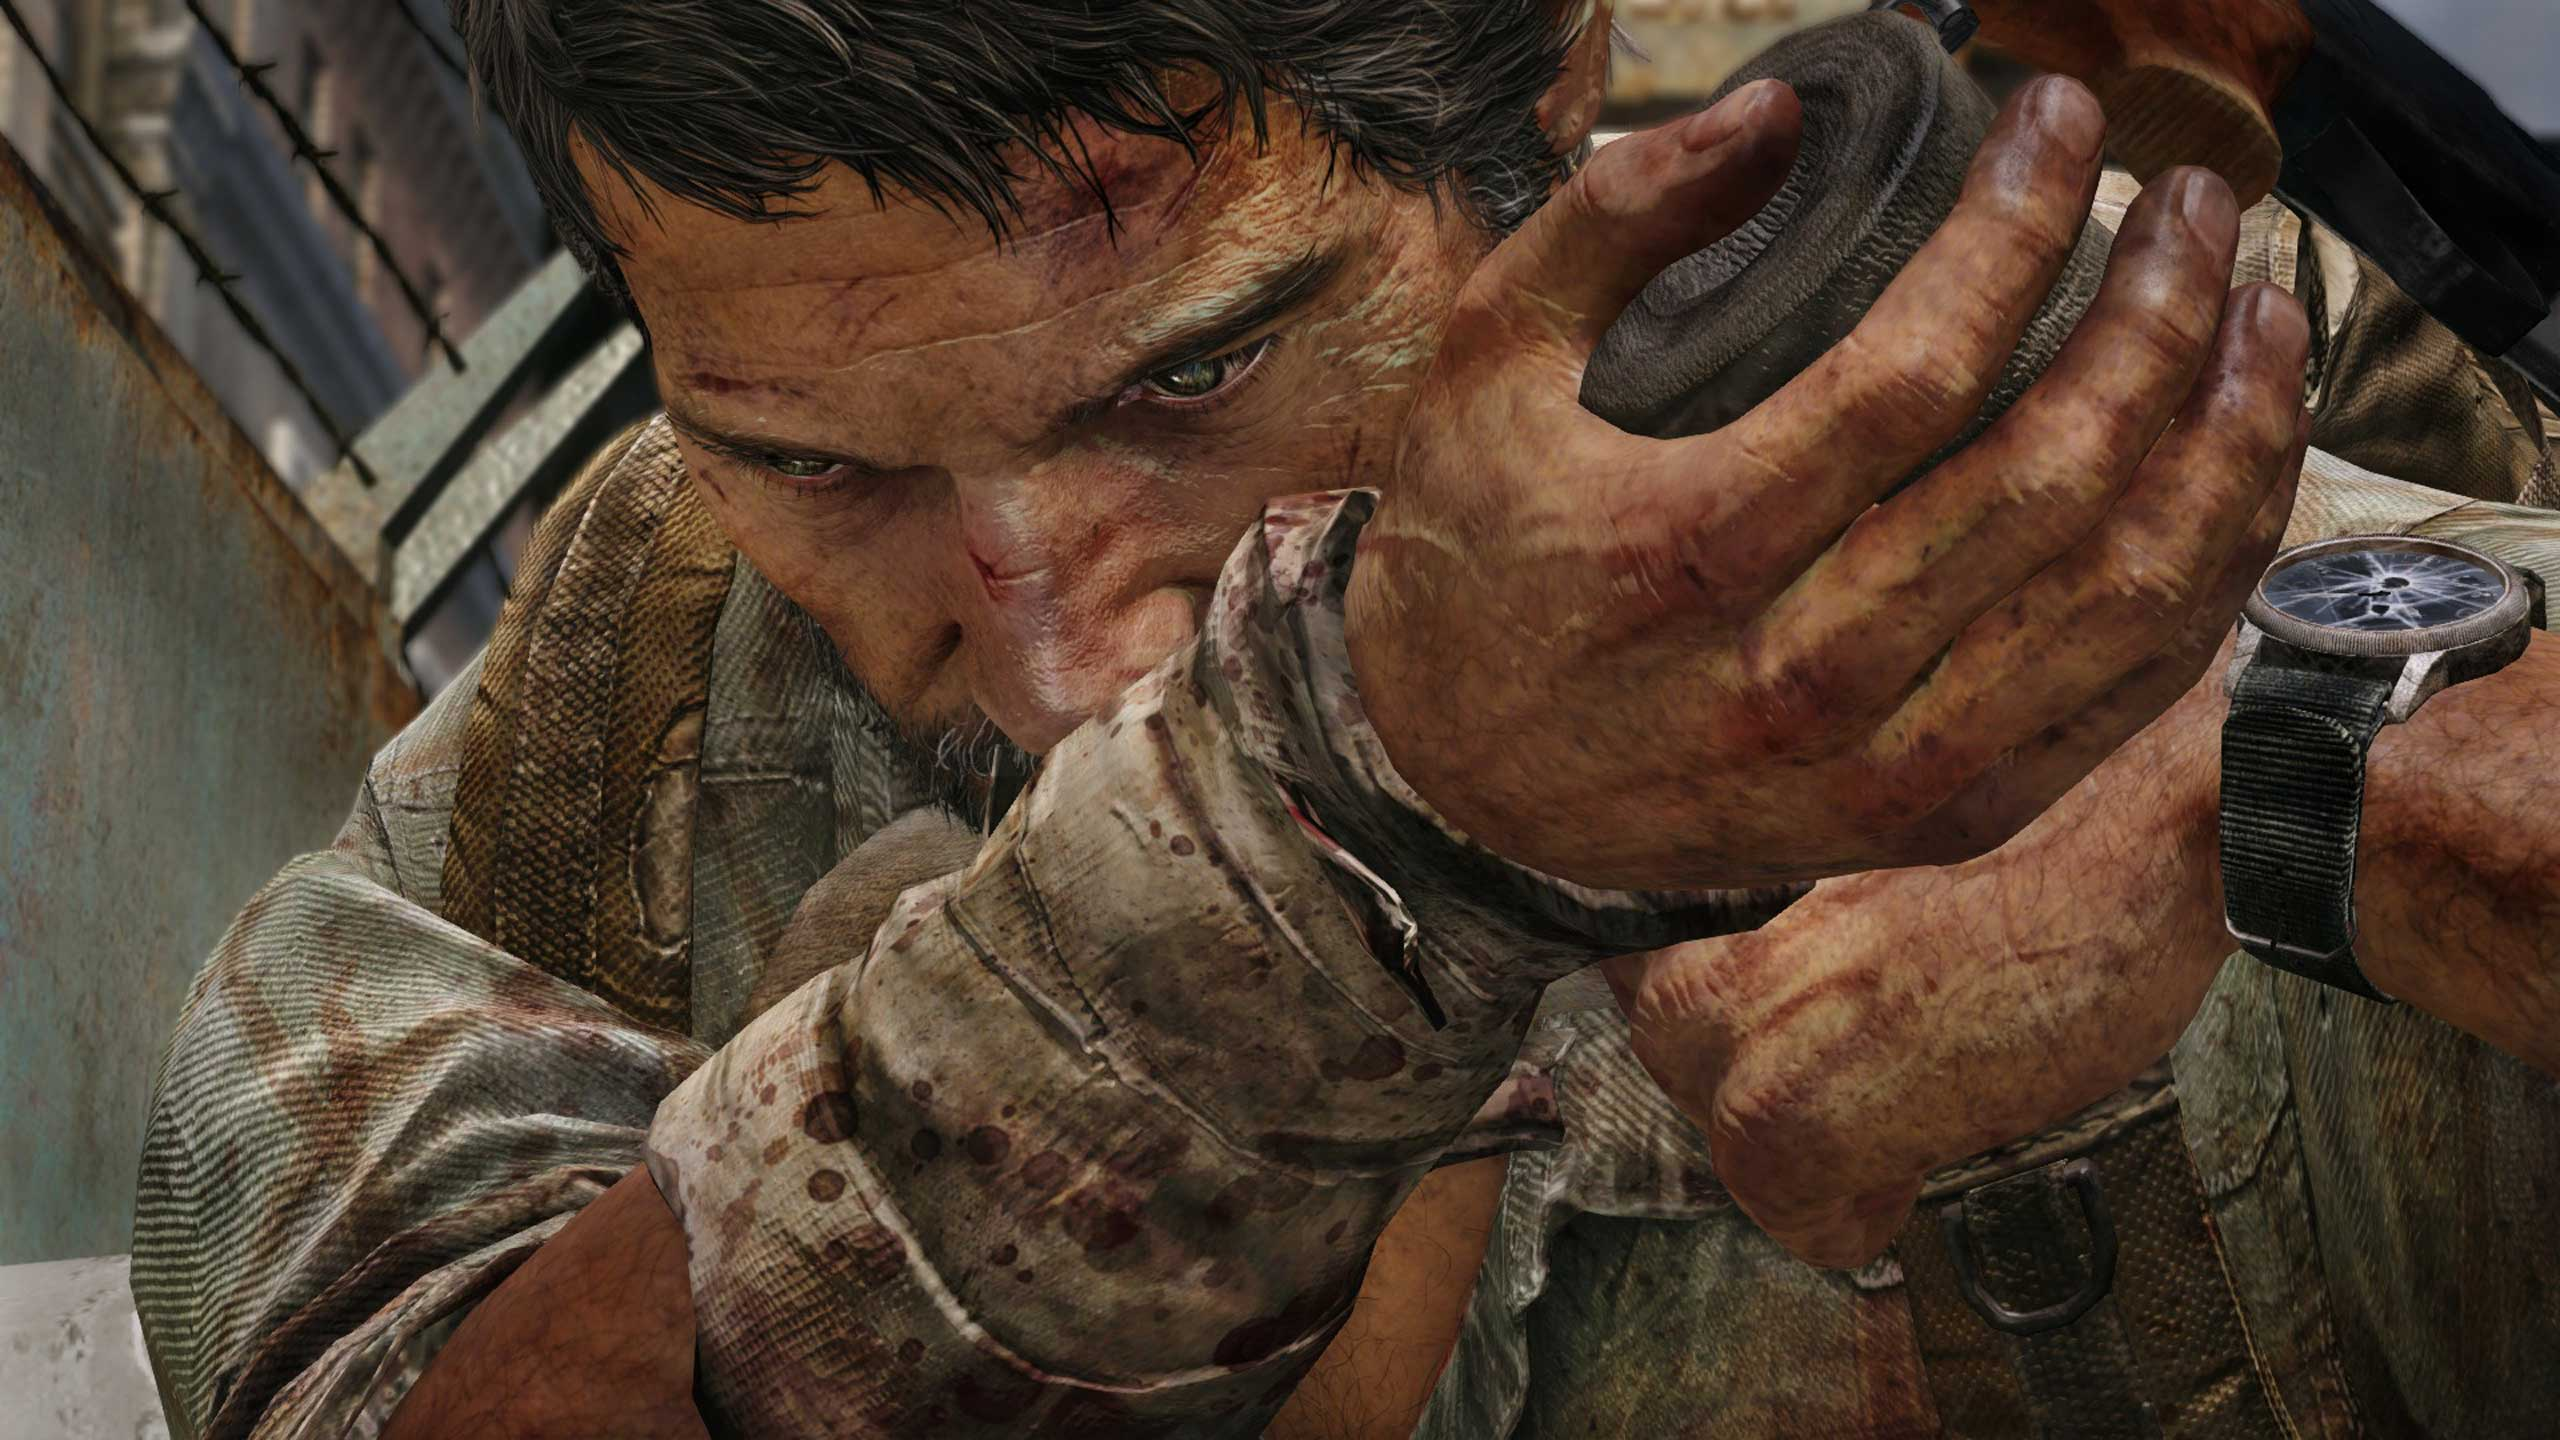 """<strong>The Last of Us: Remastered</strong>. Naughty Dog's meditation on the worst (and best) of humanity is built on technology that reaches back through the studio's pulp-adventure <i>Uncharted</i> series.                                                                          The graphics are so impressive,                                      <a href=""""http://lightbox.time.com/2014/09/15/war-photographer-video-game/"""" target=""""_blank"""">TIME recently assigned a conflict photographer to photograph inside the game.</a>"""